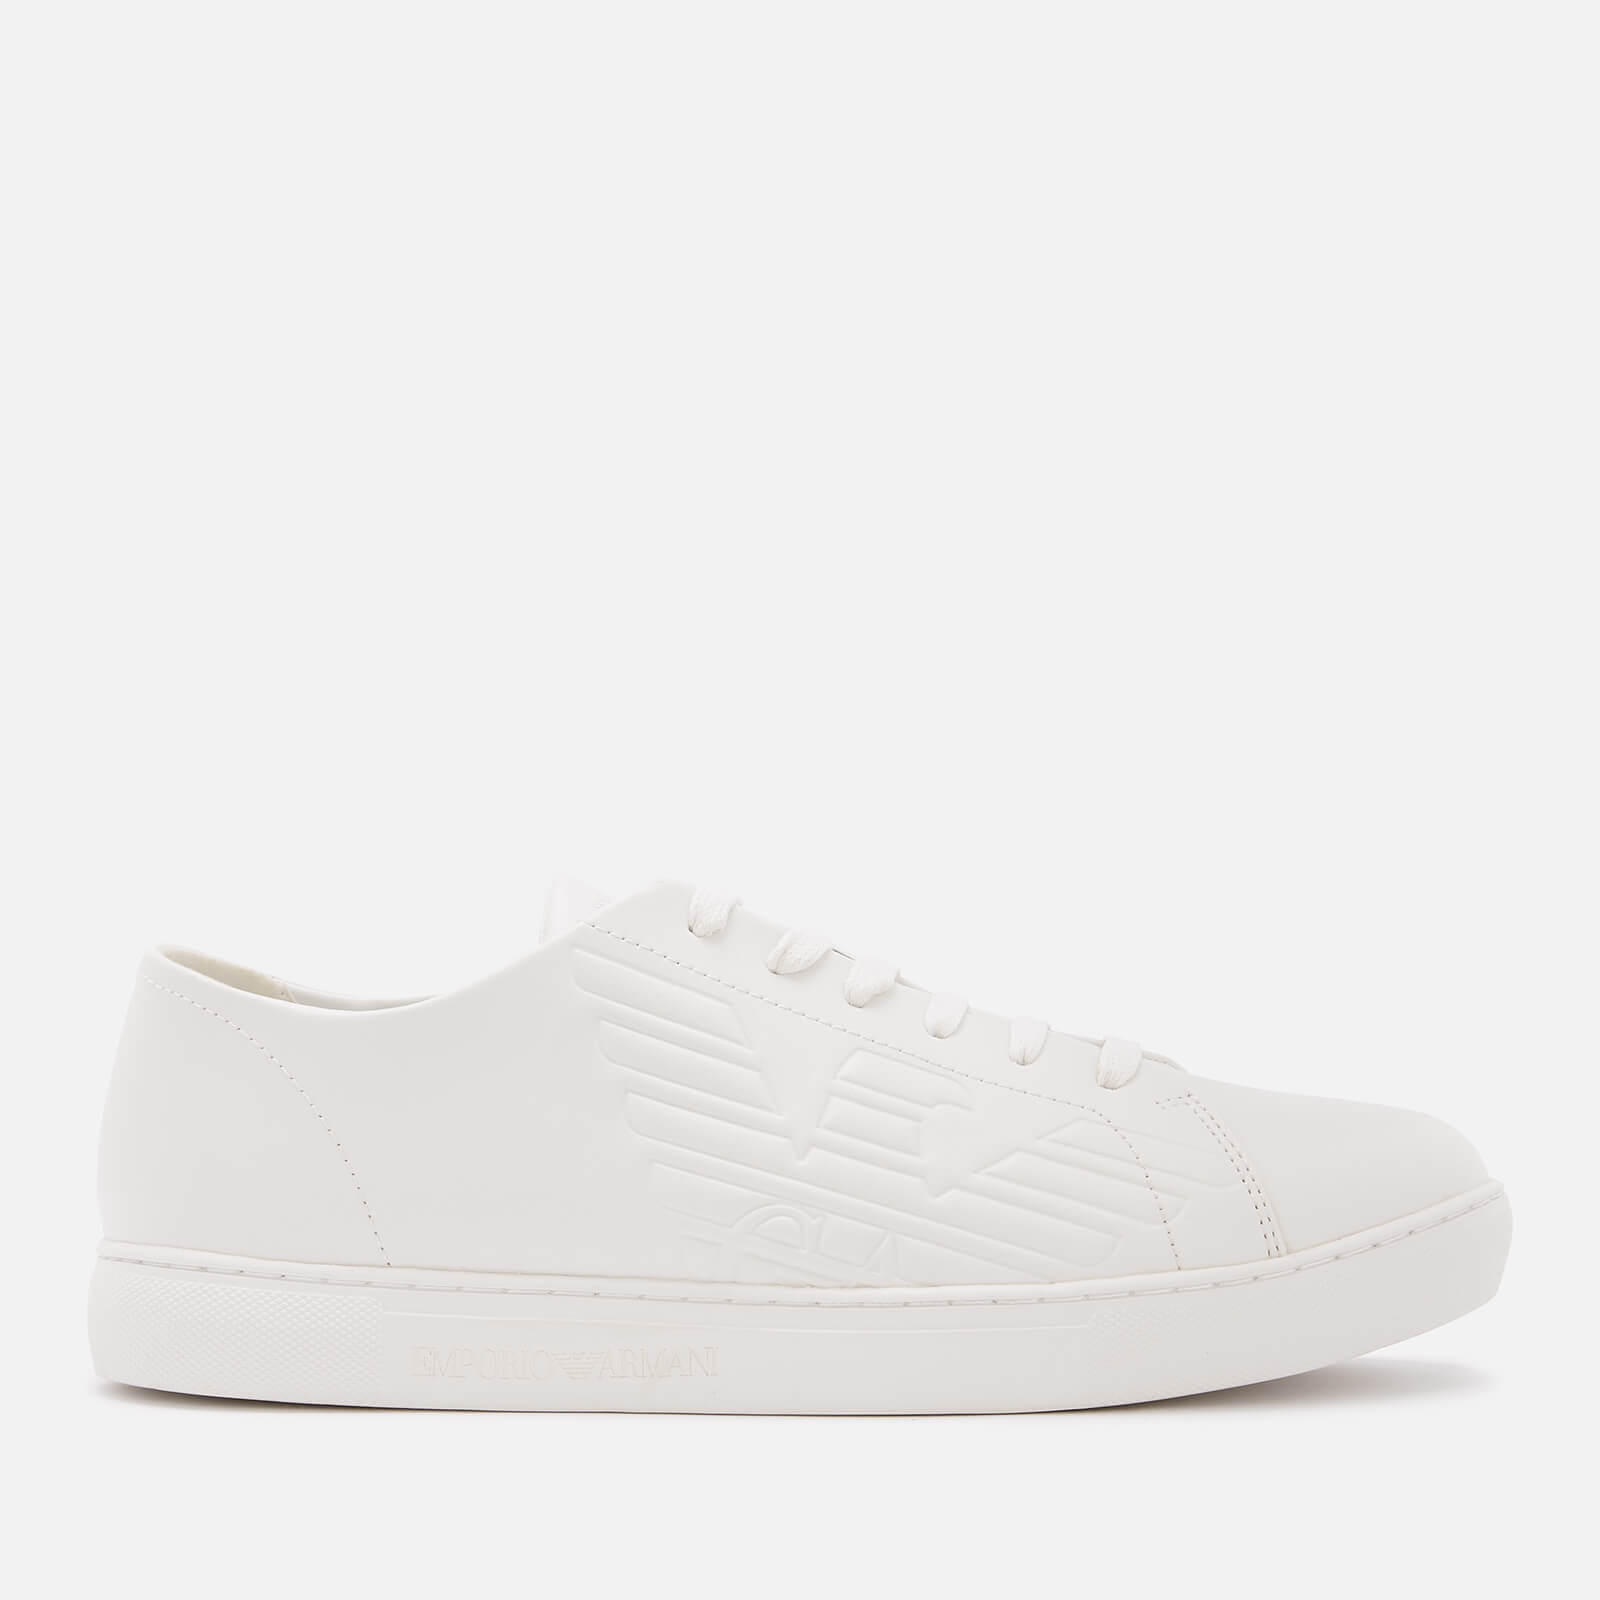 07f89415 Emporio Armani Men's Stan Leather Low Top Trainers - Optical White